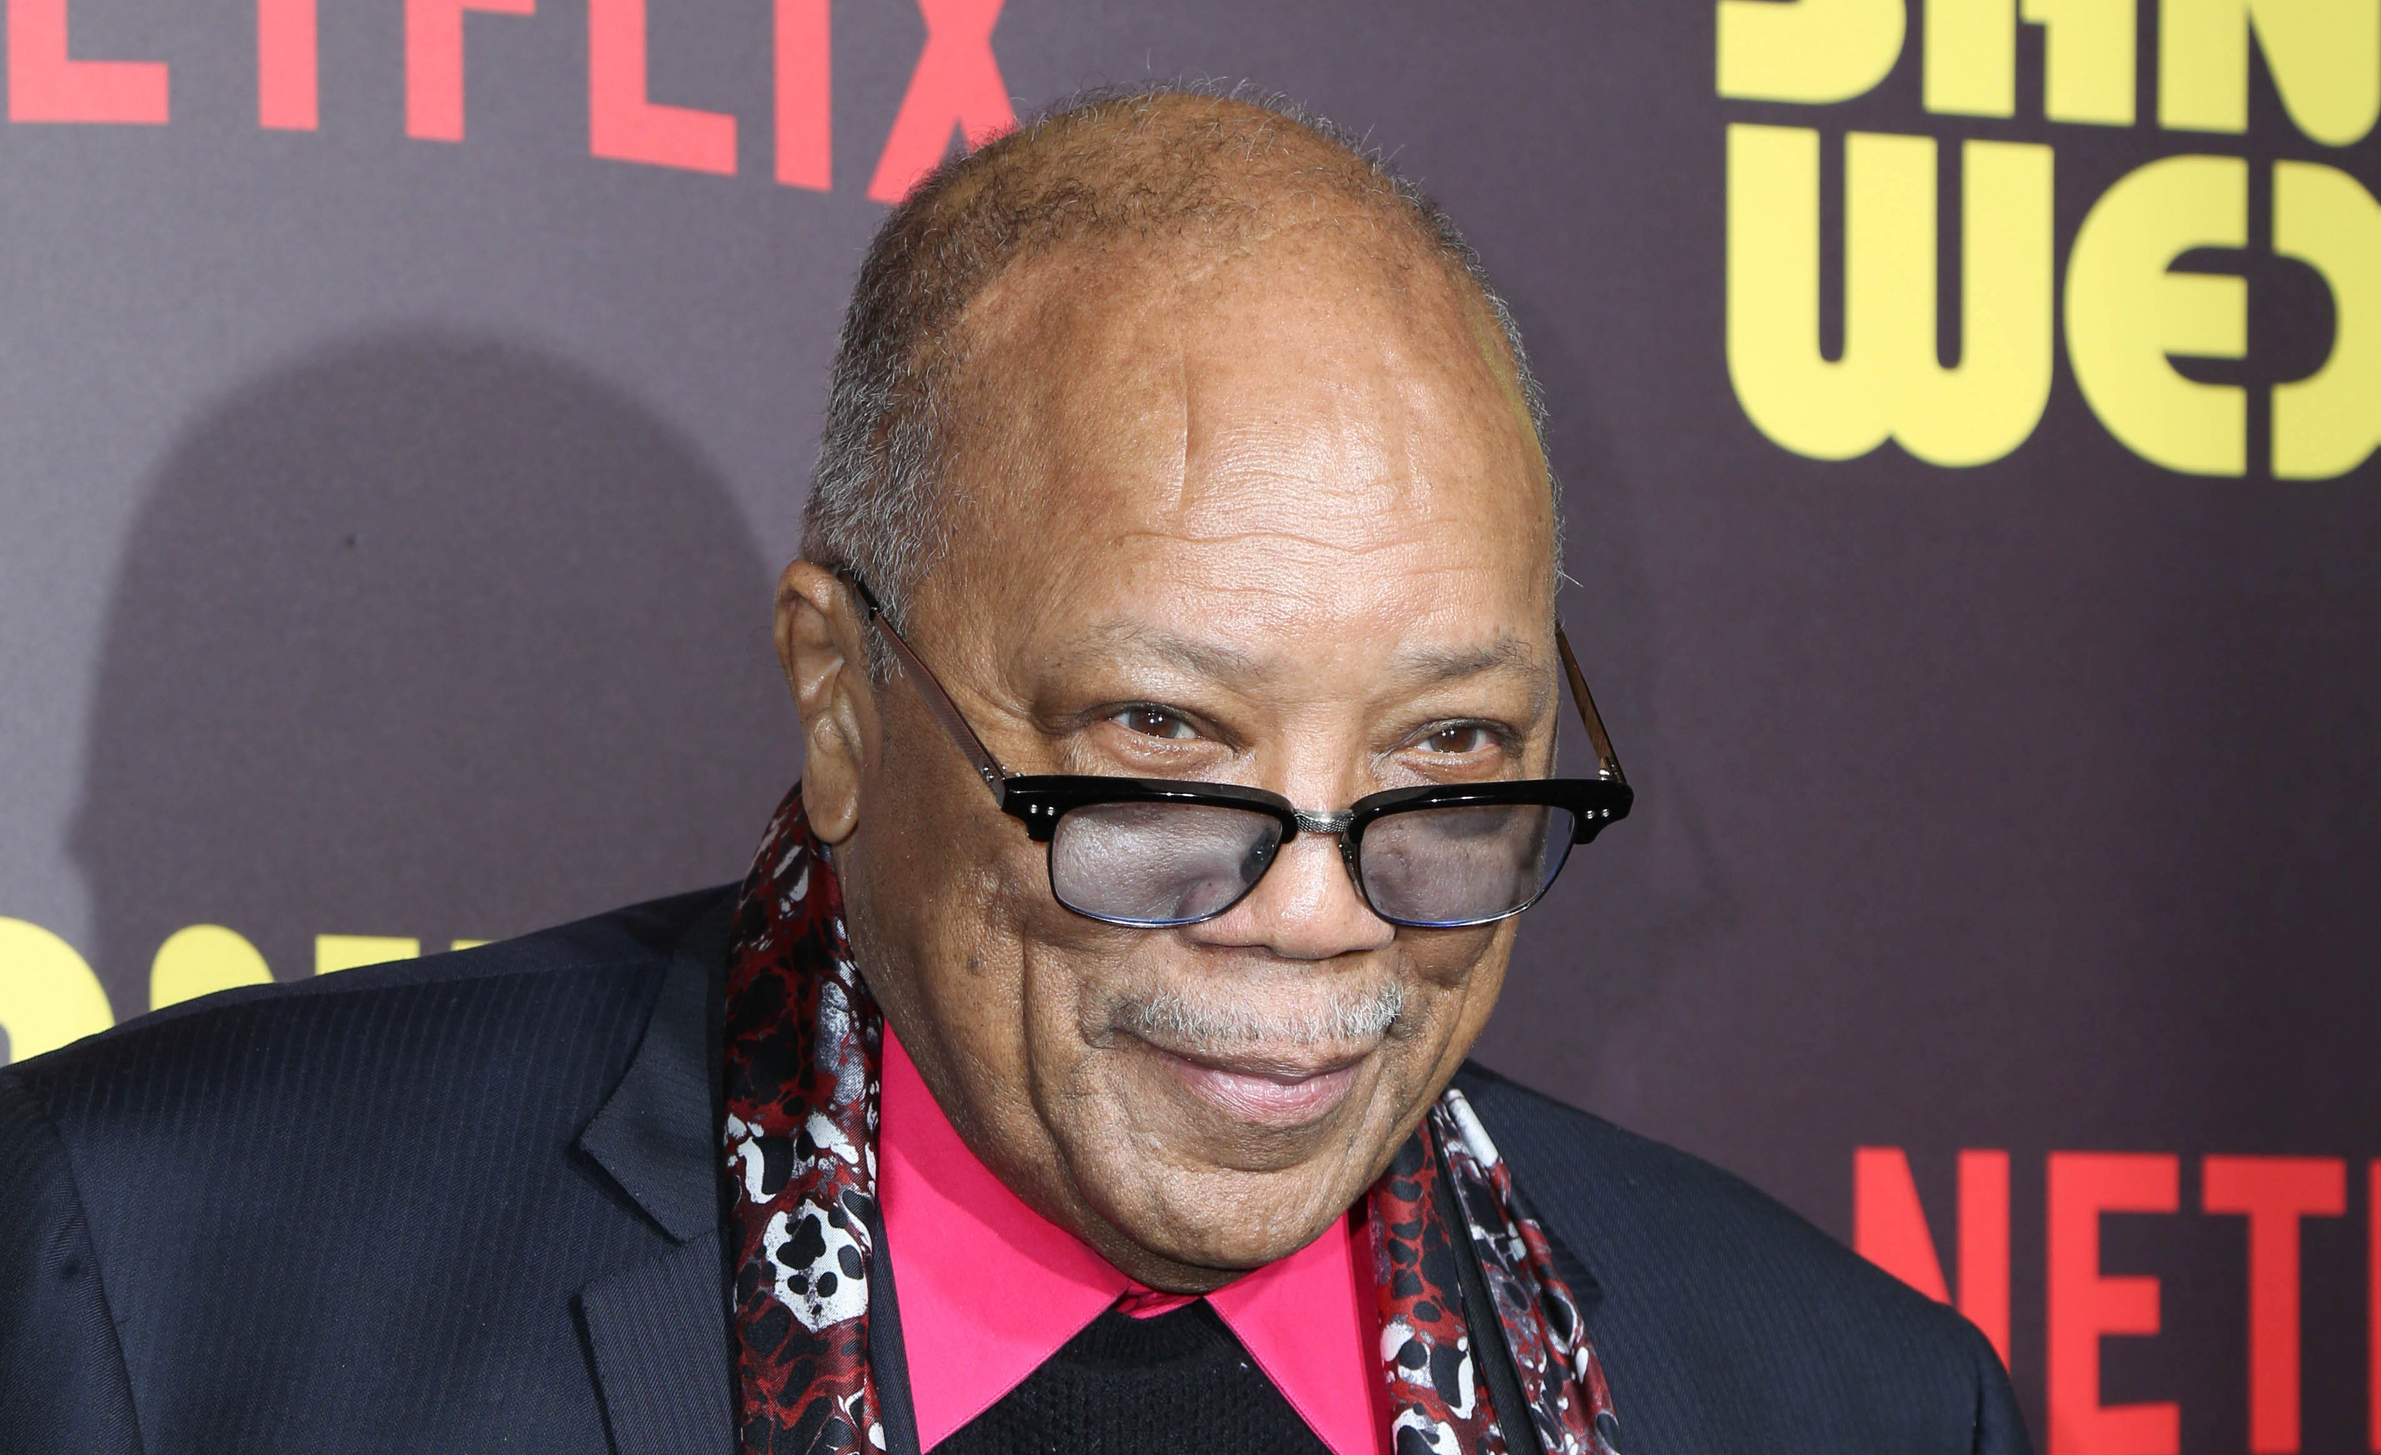 Quincy Jones Says Ray Charles Got Him Addicted To Heroin At 15